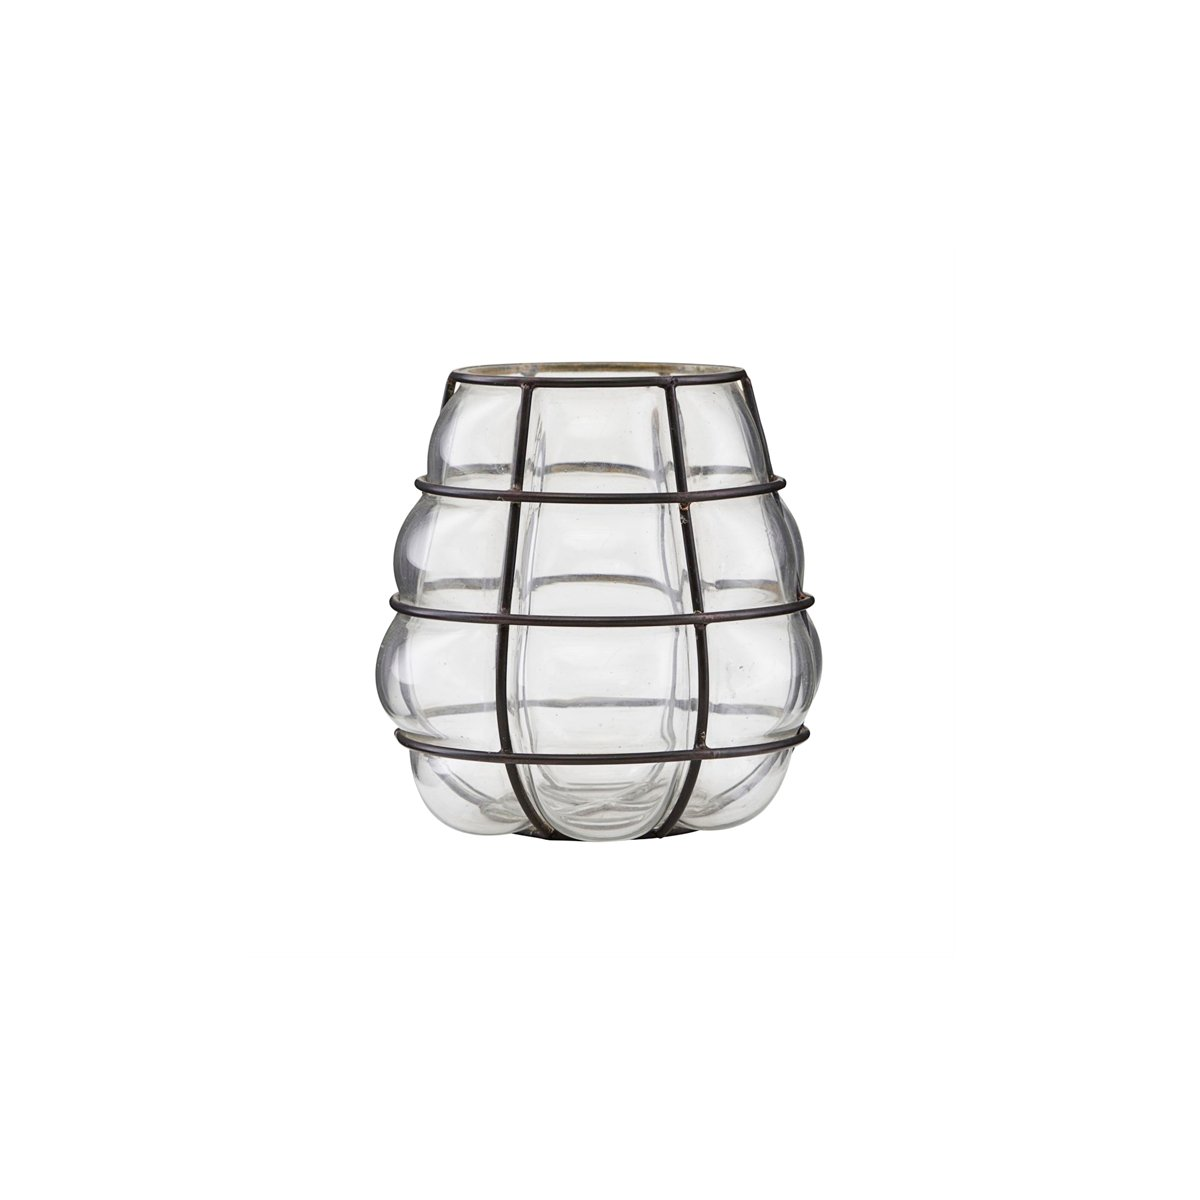 House Doctor - Navi Antik Metallisk Lantern - Small (258740300/258740300)